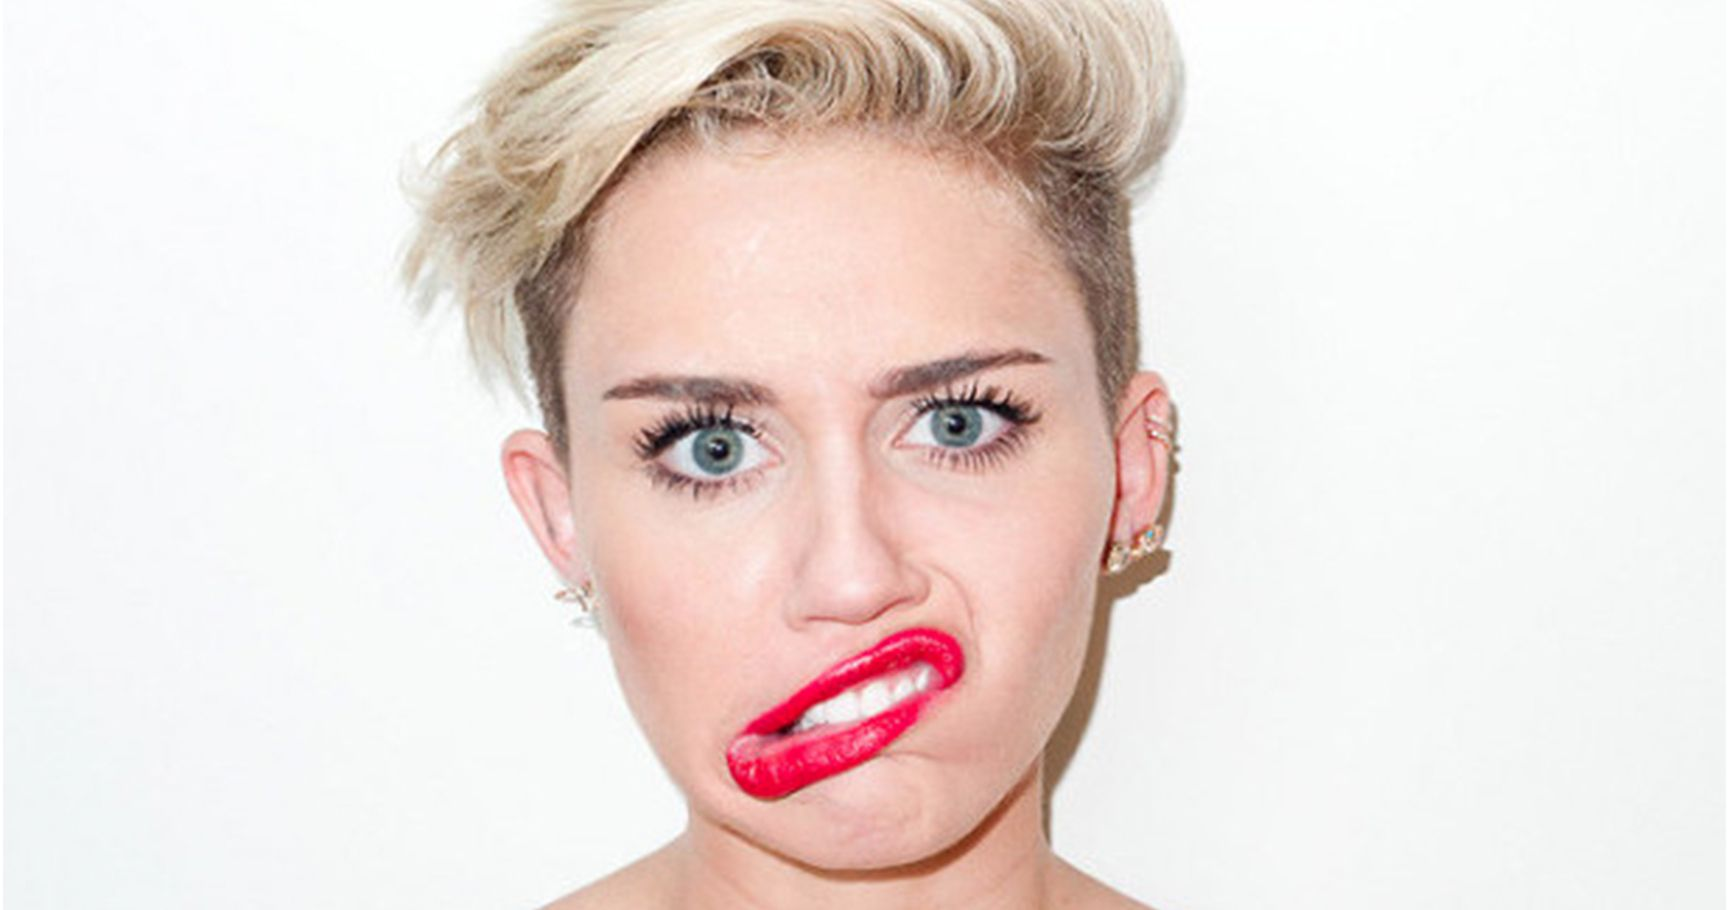 15 Things Most People Don't Know About Miley Cyrus